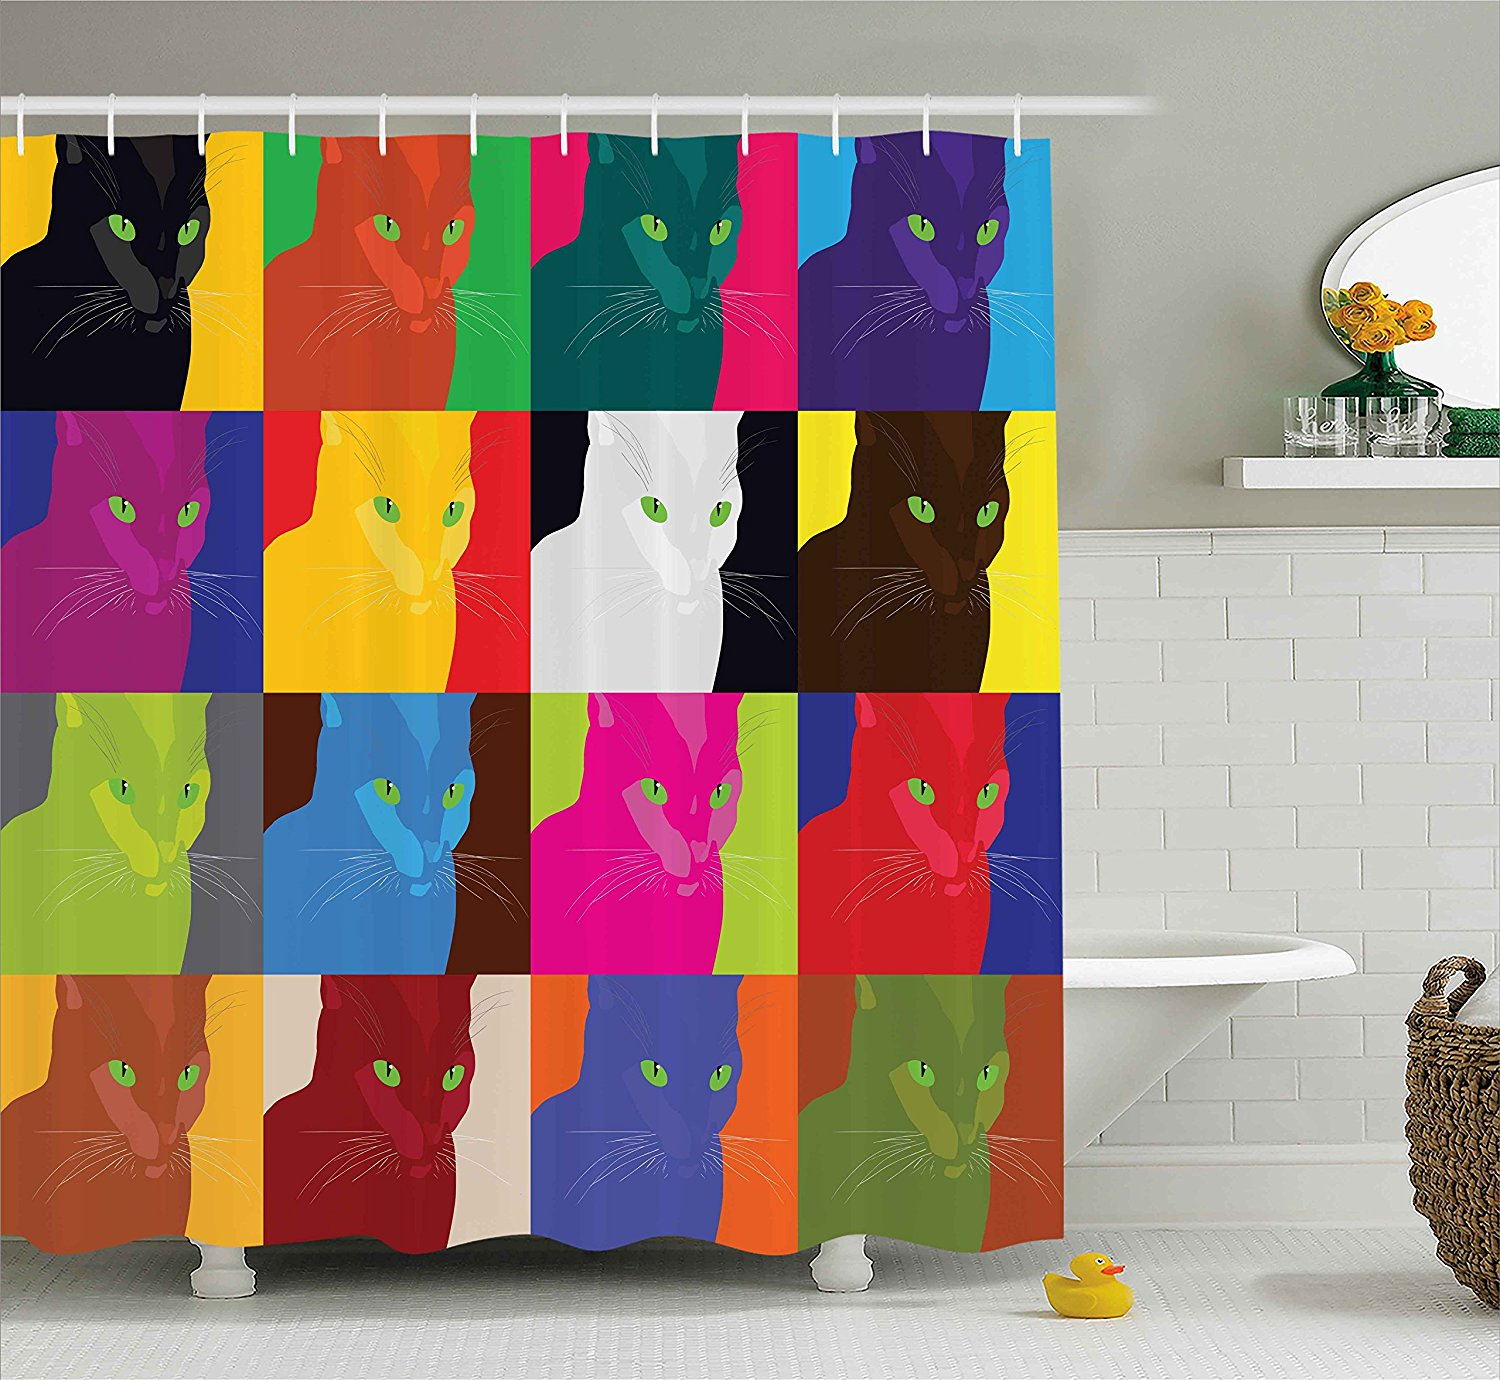 Us 16 72 21 Off Cat Decor Shower Curtain Pop Art Style Featured Fractal Kitty Portraits Frame With Color Effects Artsy Print Bathroom Decor Set In